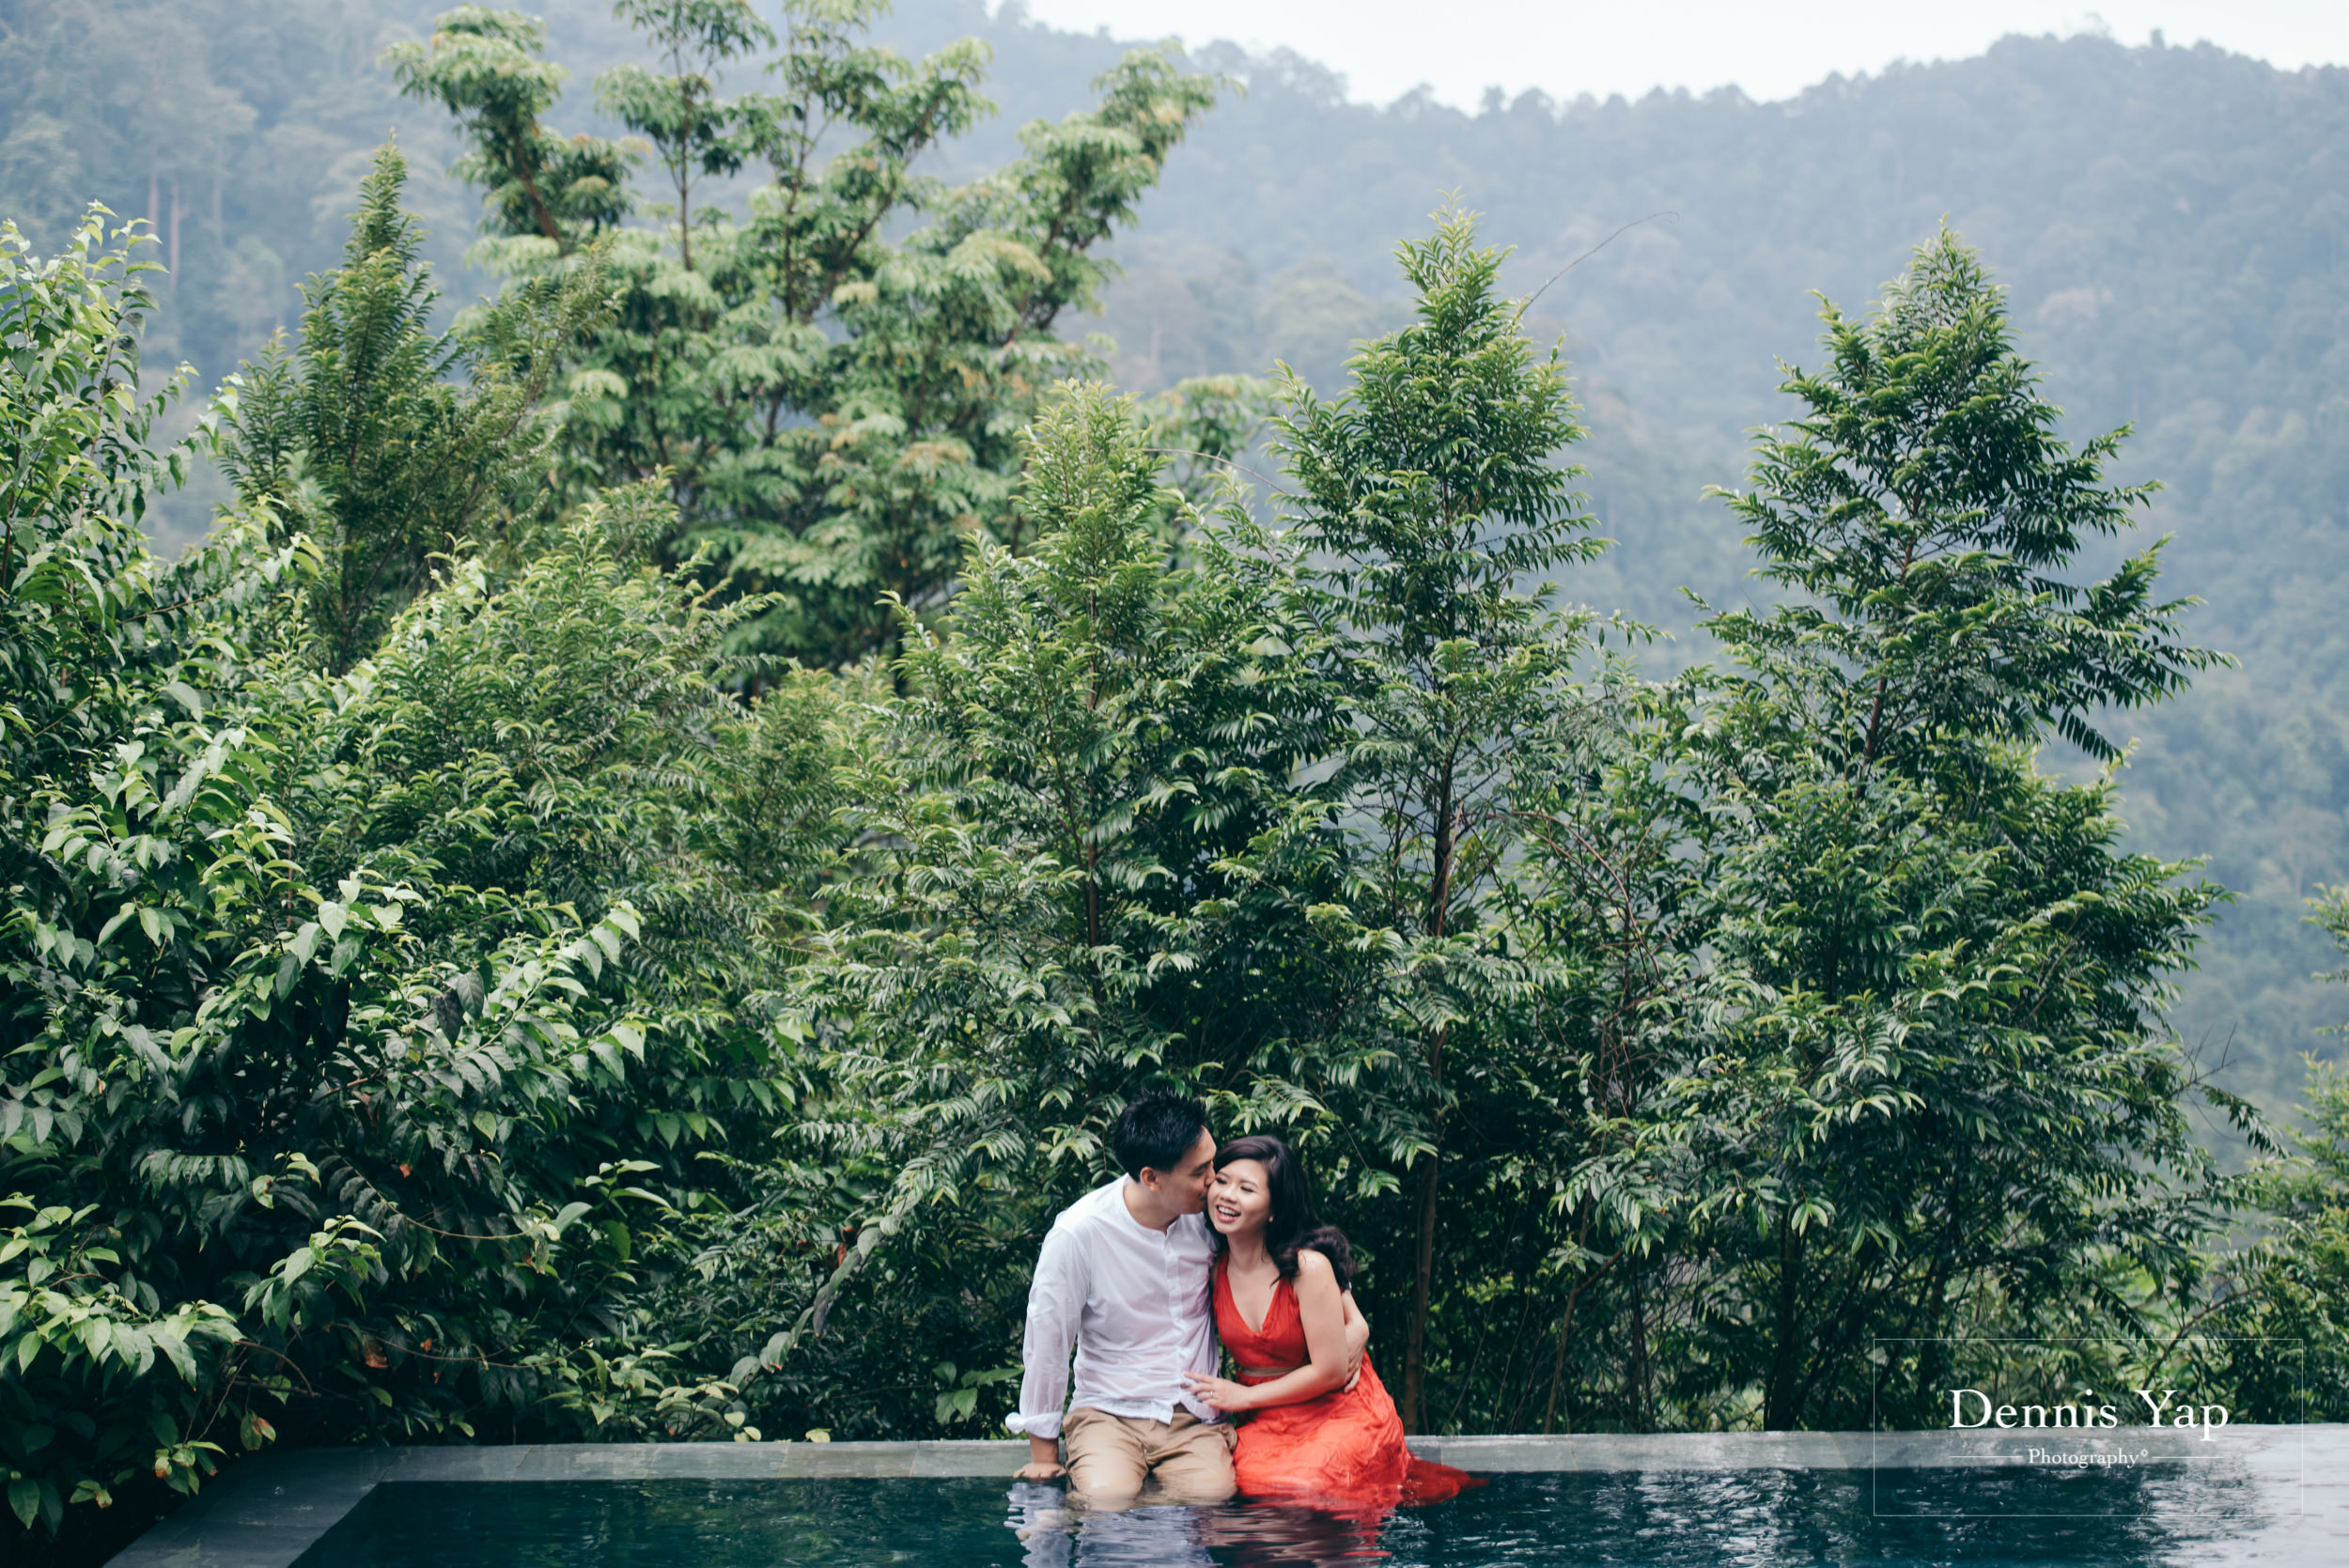 desmond yvonne pre wedding shorea retreat seremban dennis yap photography forest retreat-120.jpg